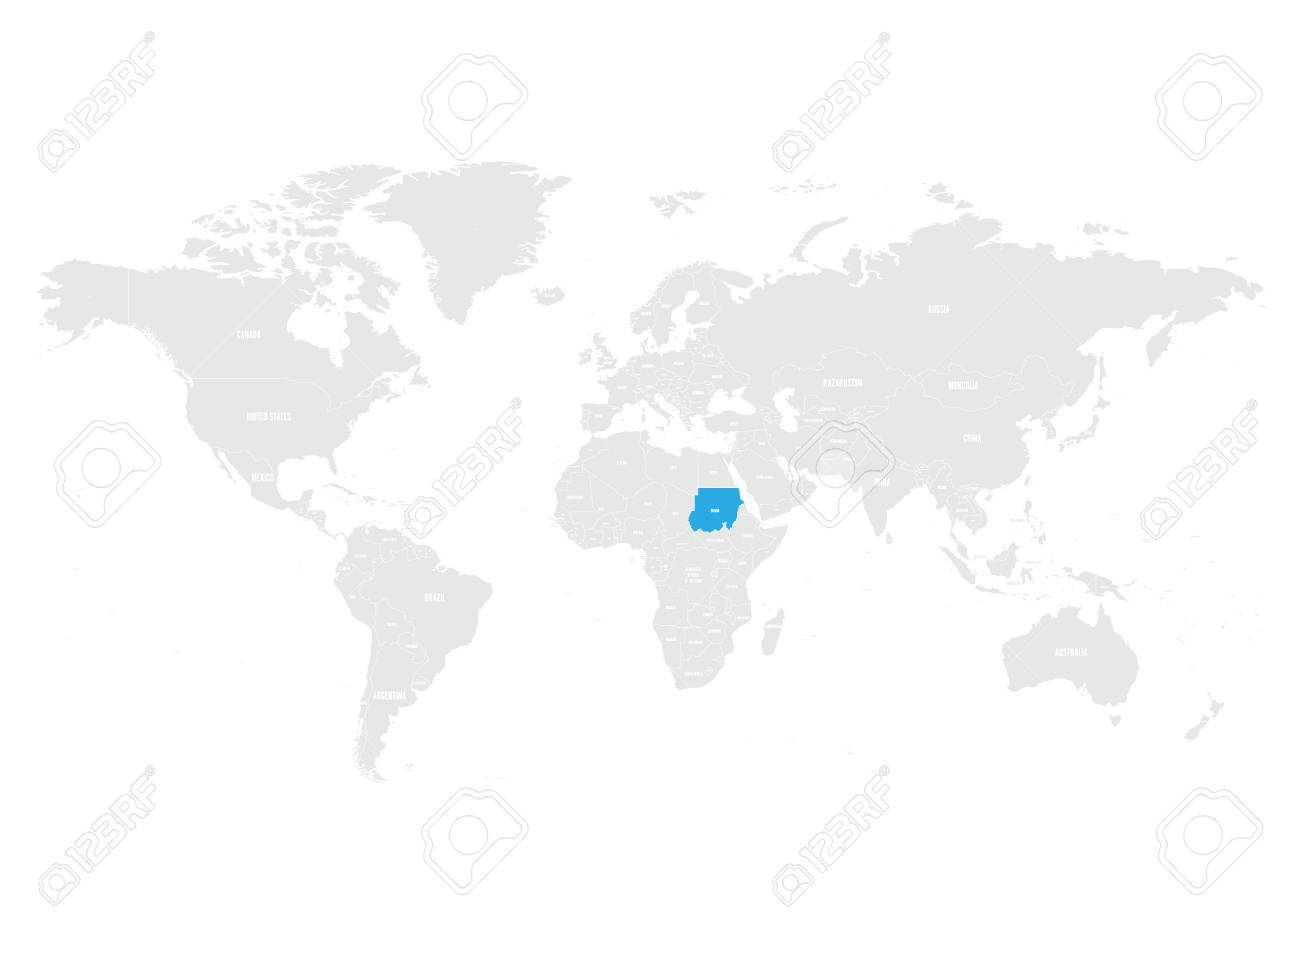 Sudan Map Location. Royalty Free Cliparts, Vectors, And Stock ...